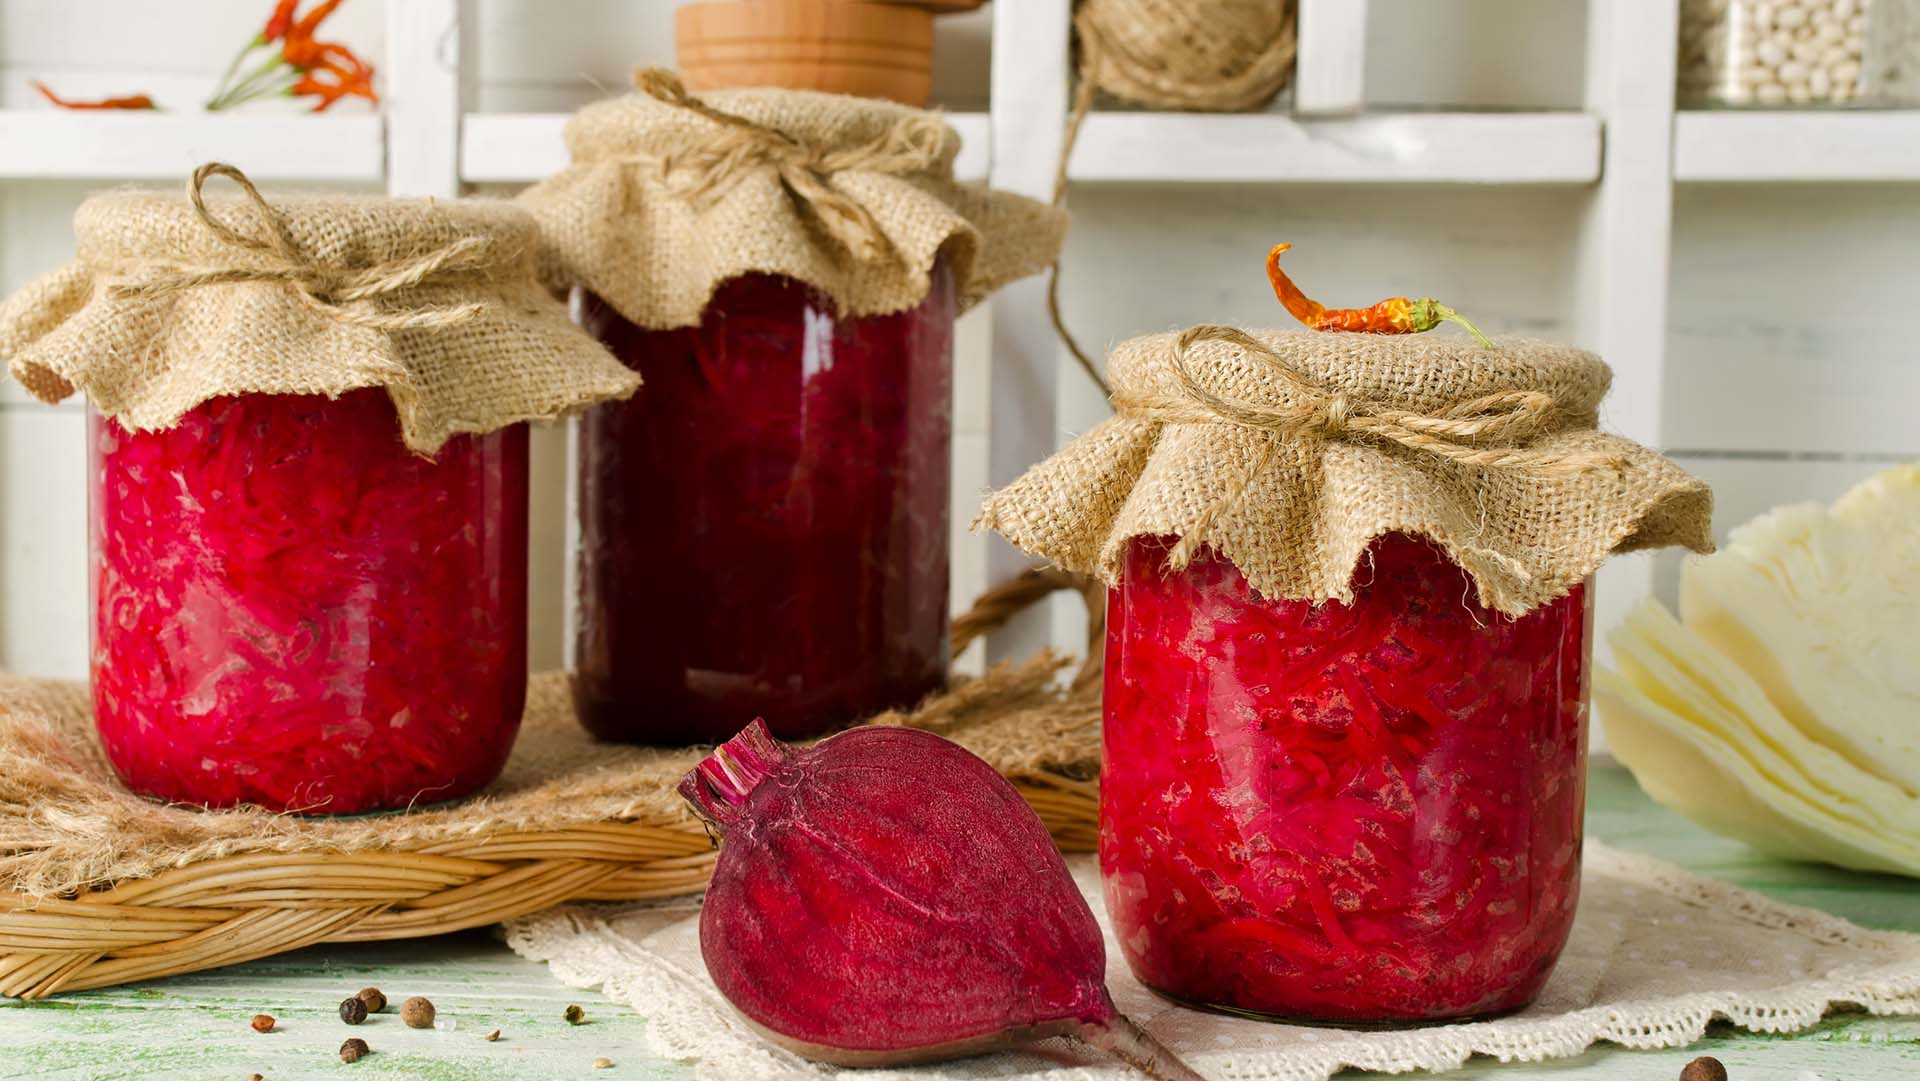 be_Your guide to fermenting food at home